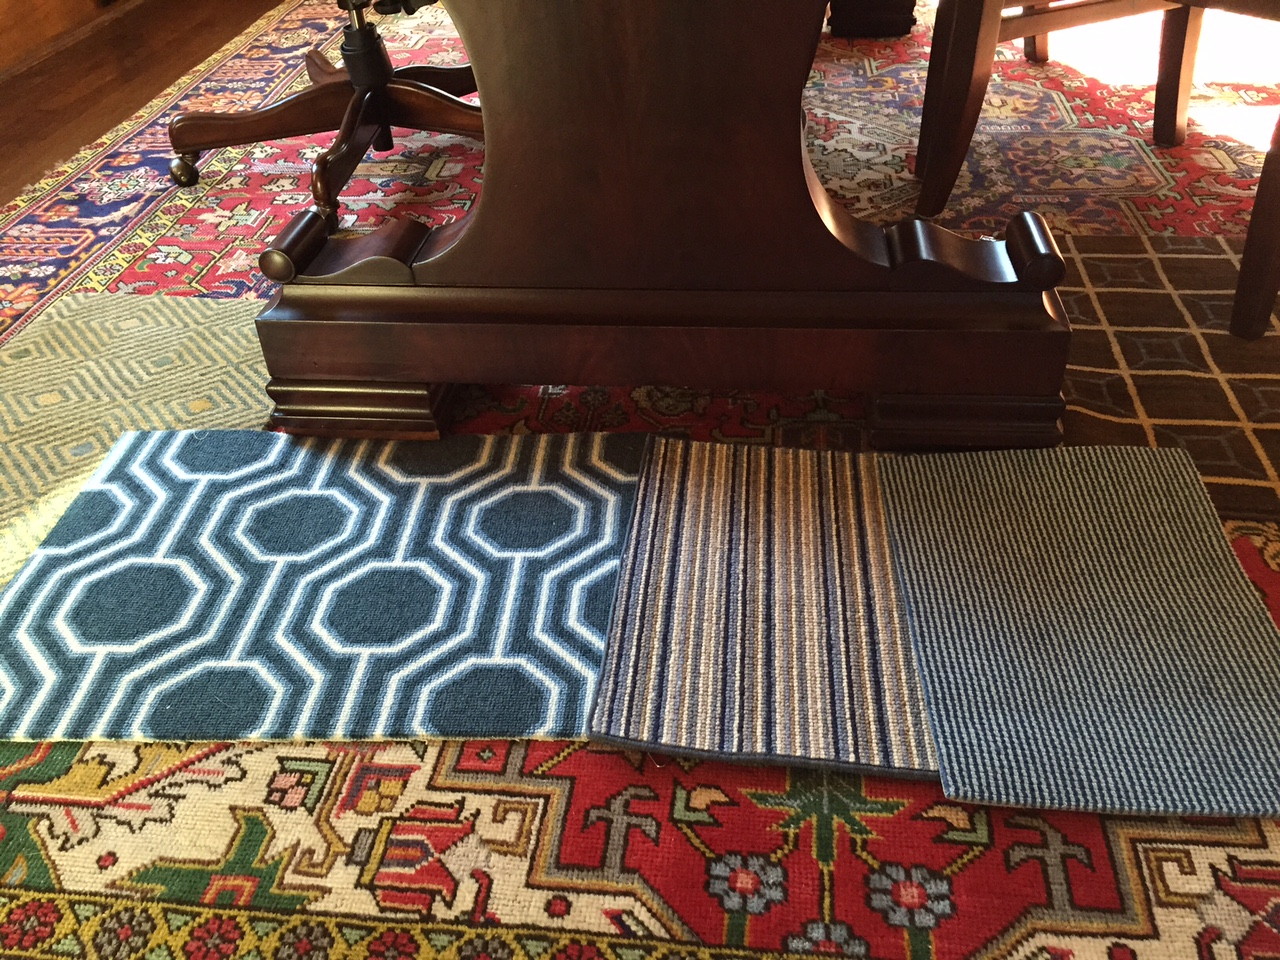 One Room Challenge Fall 2015, Week 2 - Carpet Samples | Kelly Rogers Interiors | Interiors for Families